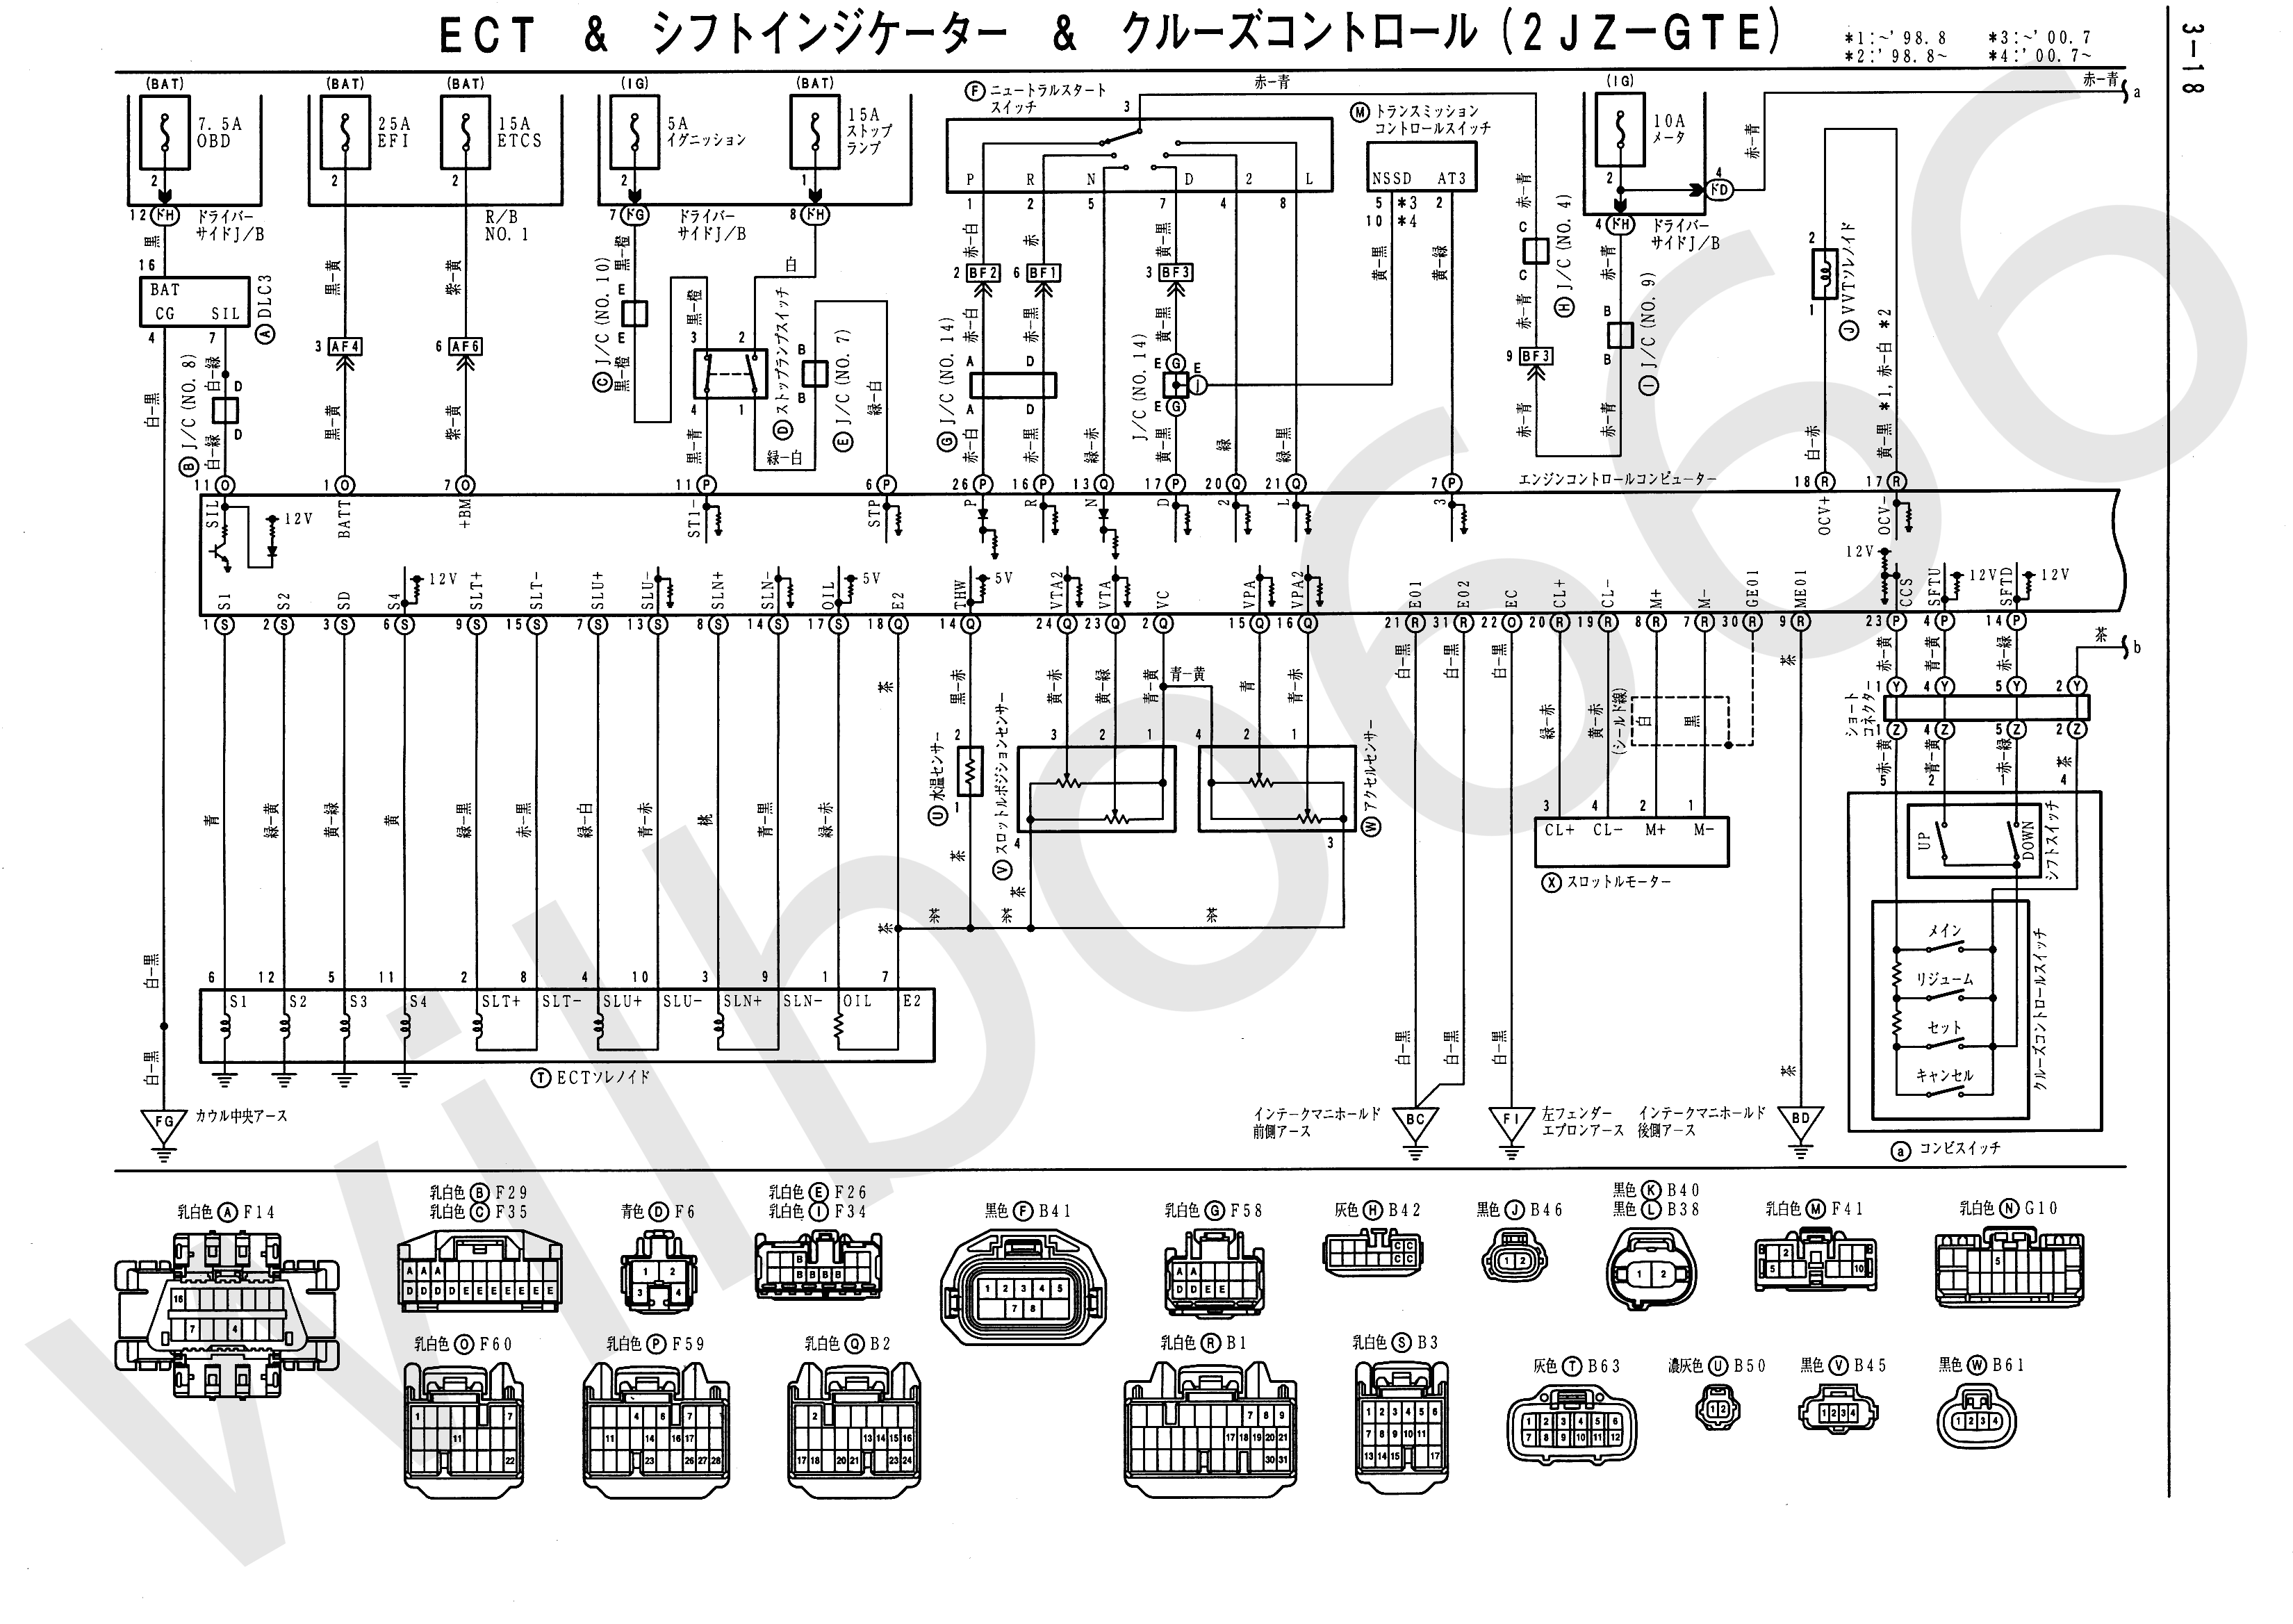 JZS161 Electrical Wiring Diagram 6748505 3 18 1jz wiring diagram light switch wiring diagram \u2022 free wiring  at nearapp.co